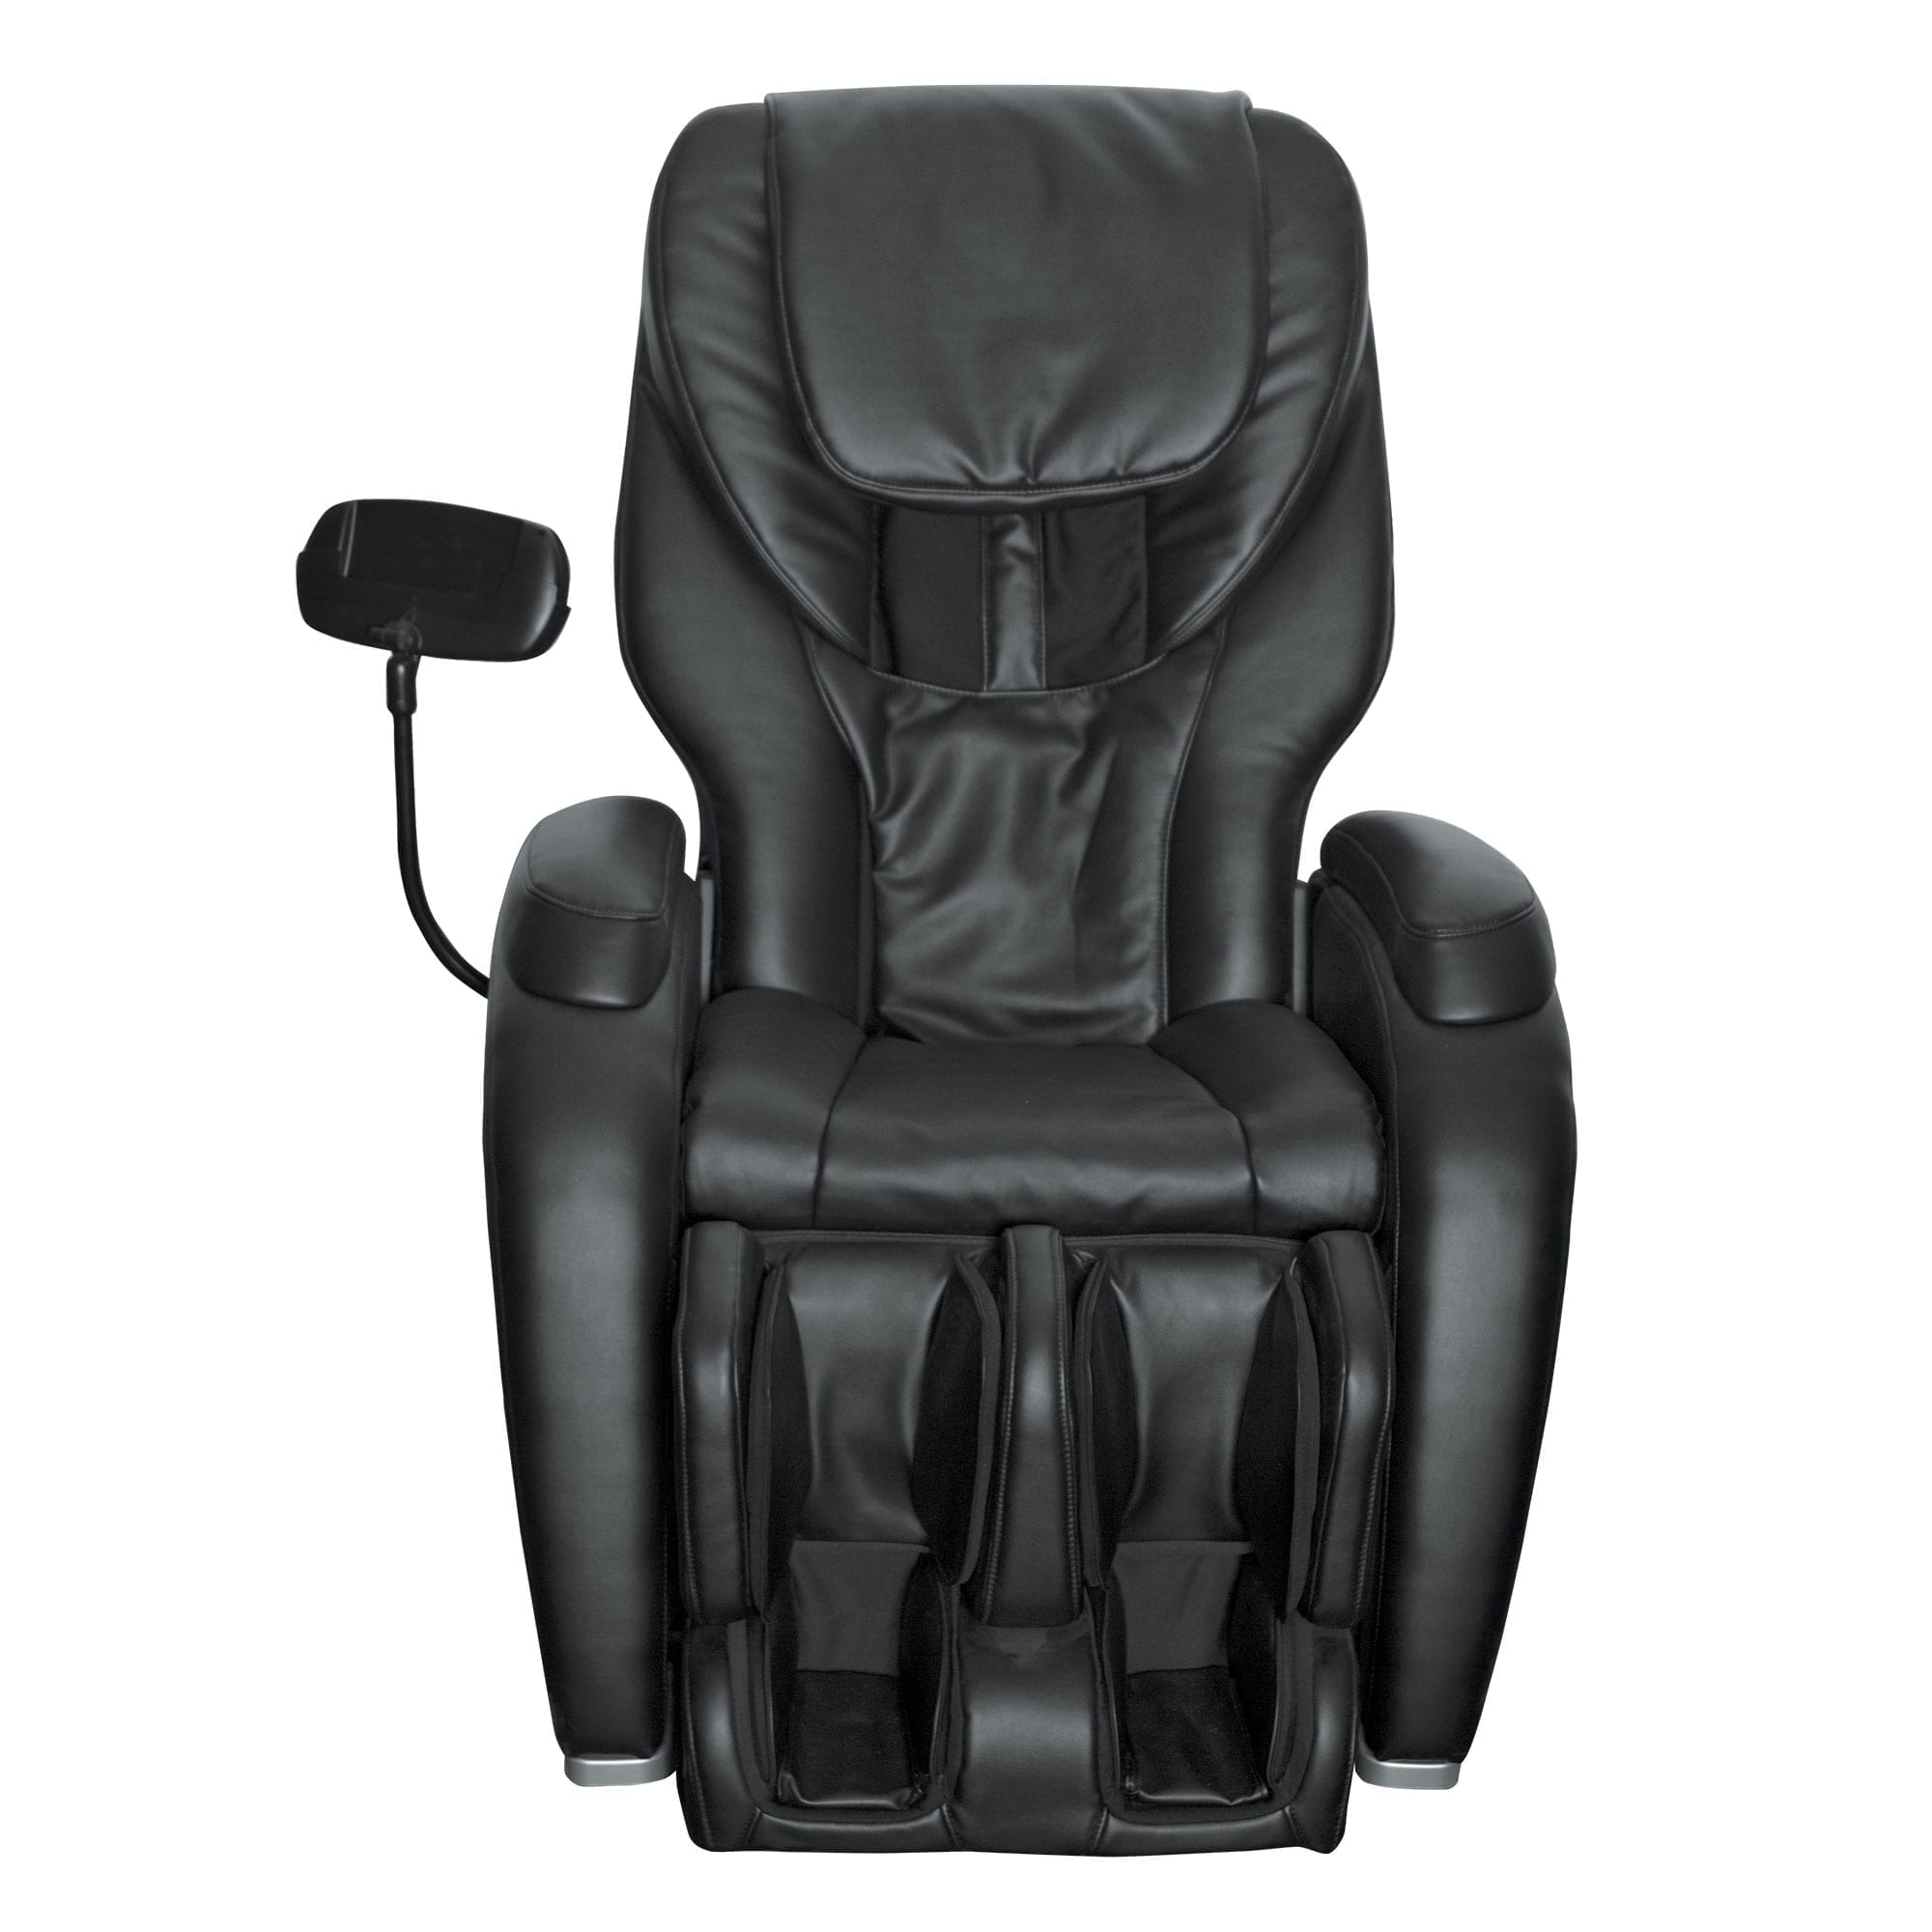 EP MA10 Massage Chair A Great Option from Panasonic